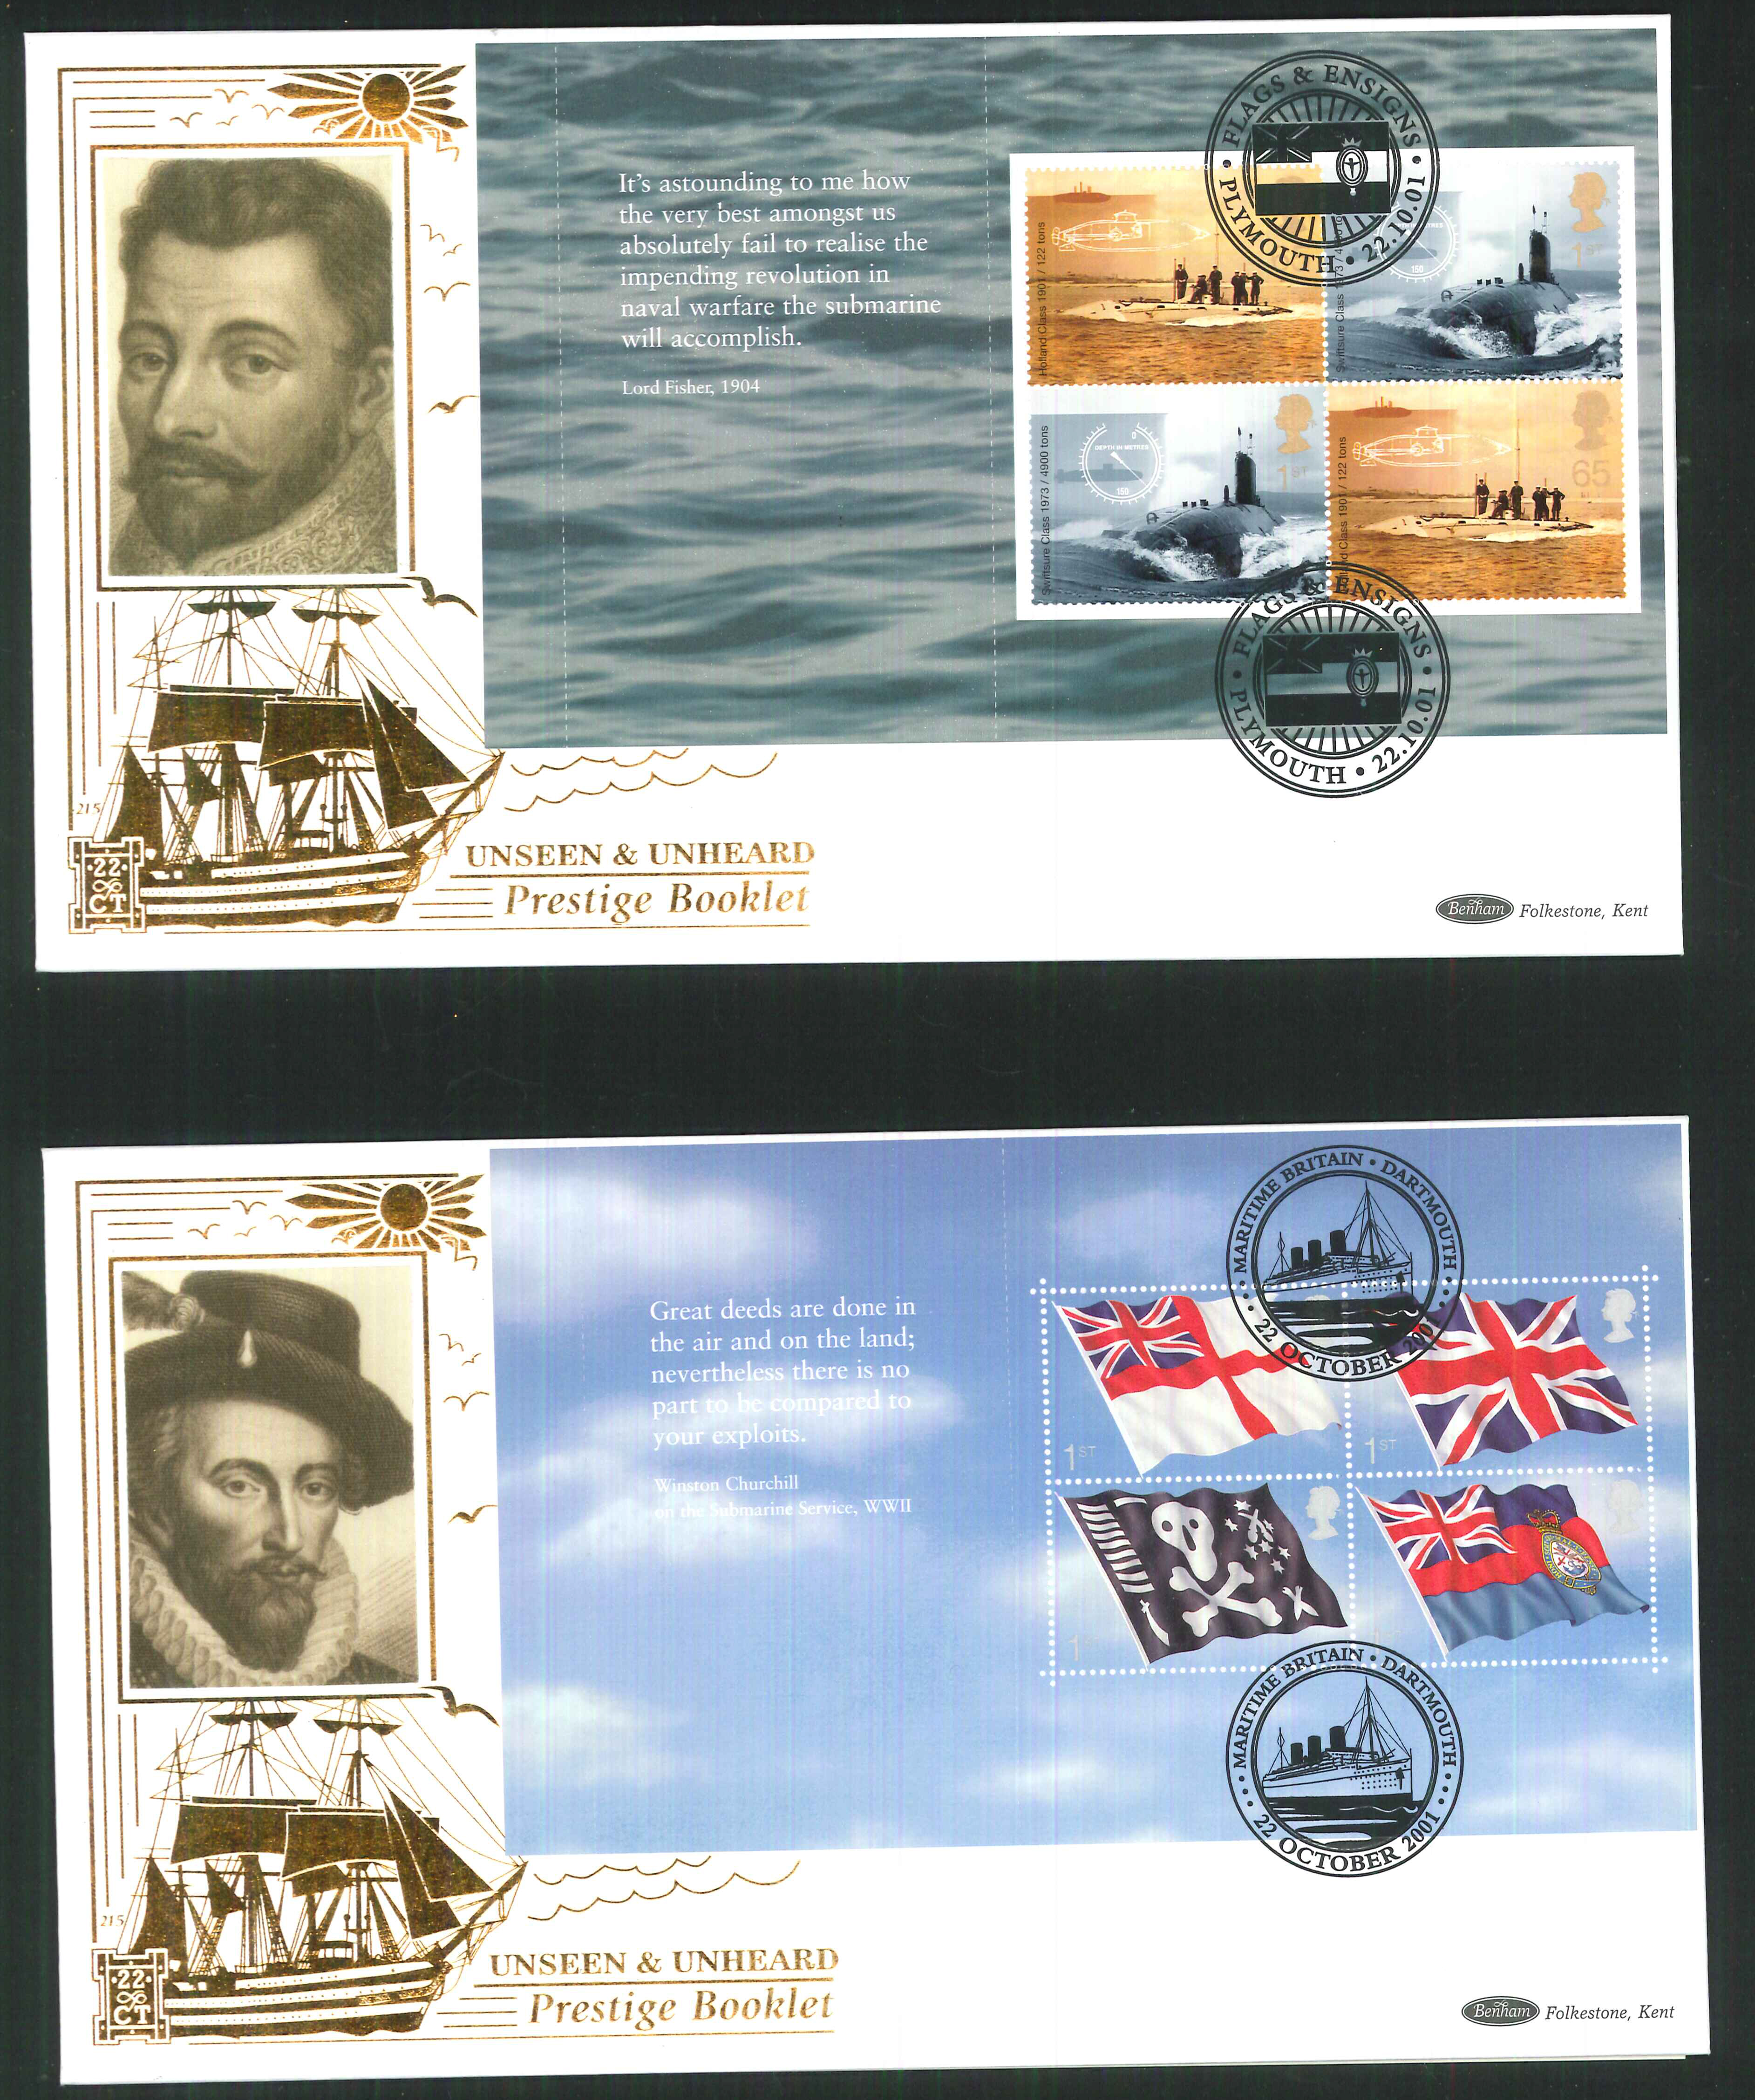 2001 - Flags & Ensigns PSB FDC Benham 22ct Gold 500 - Different Postmark